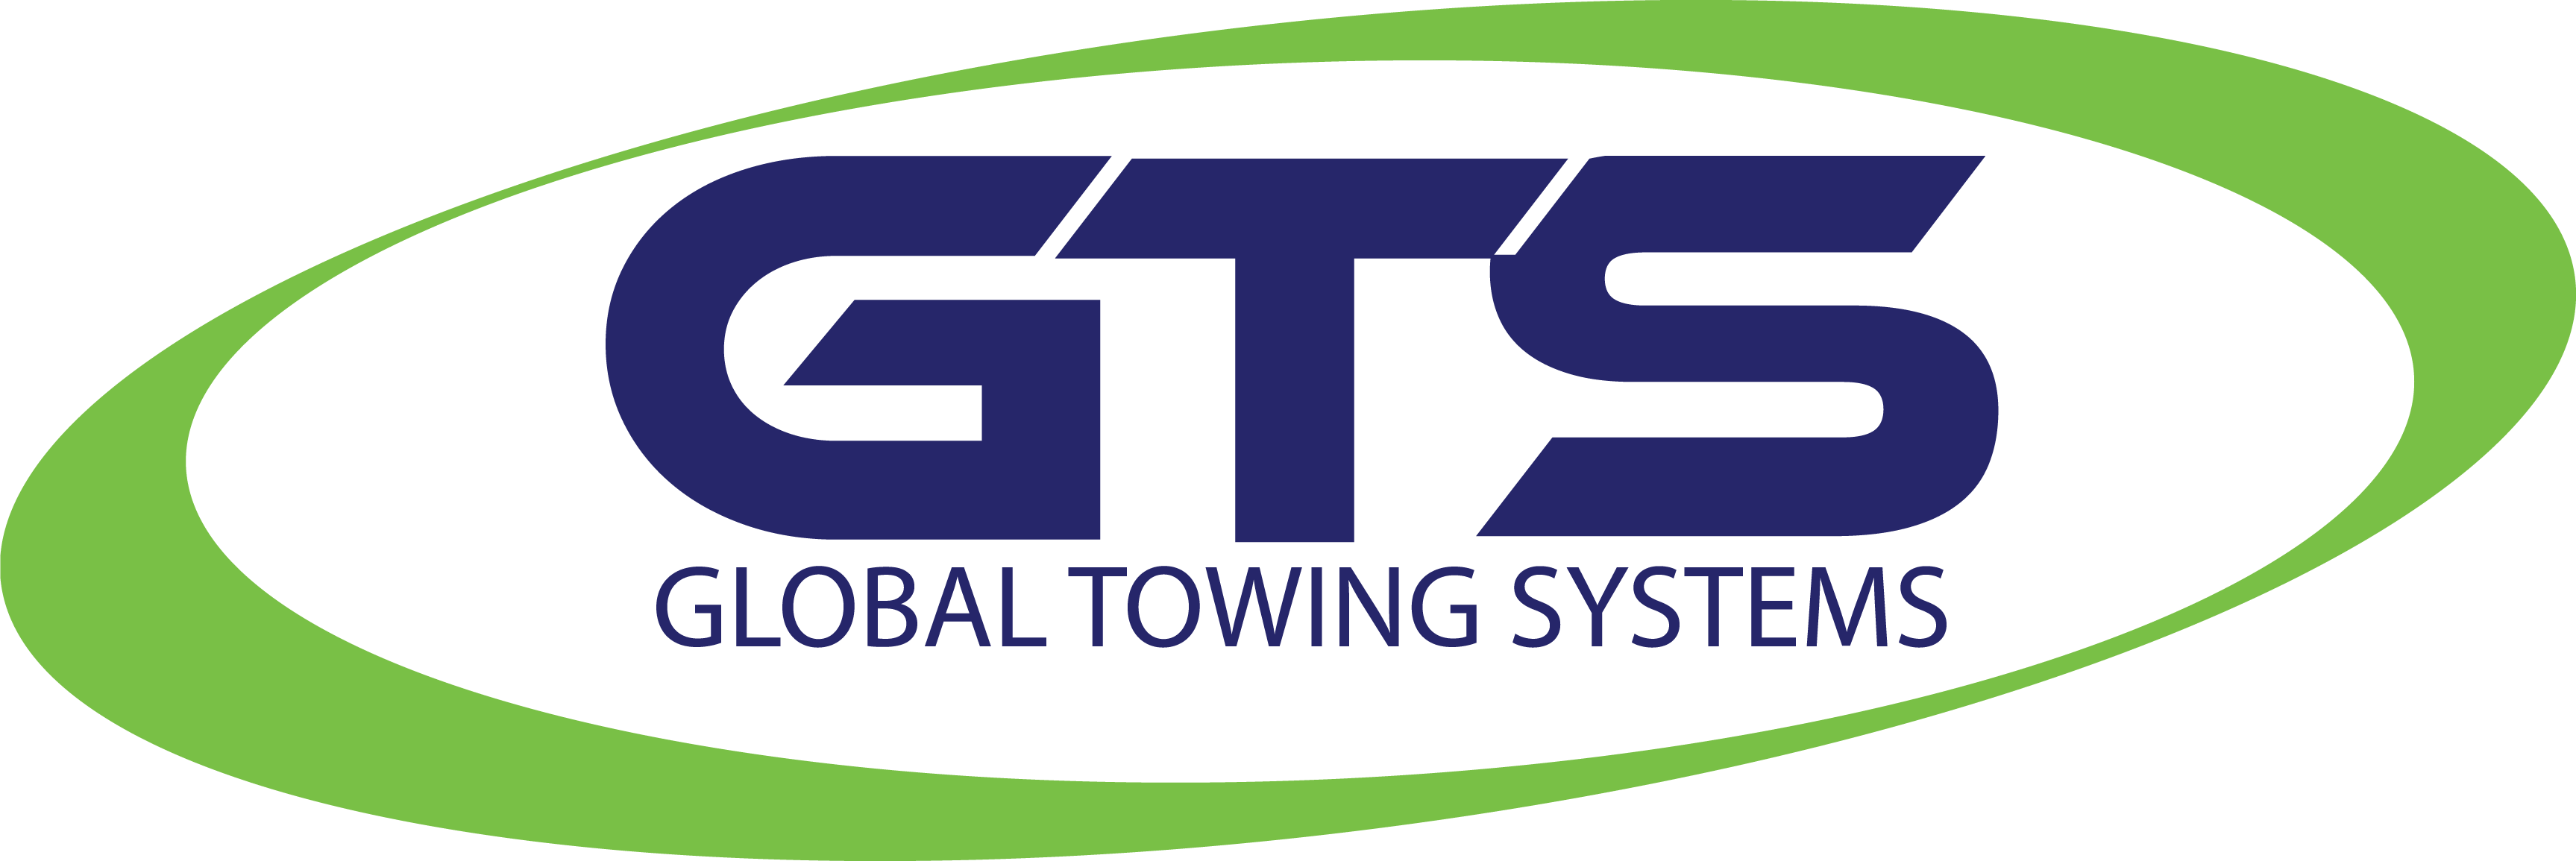 Global Towing Systems